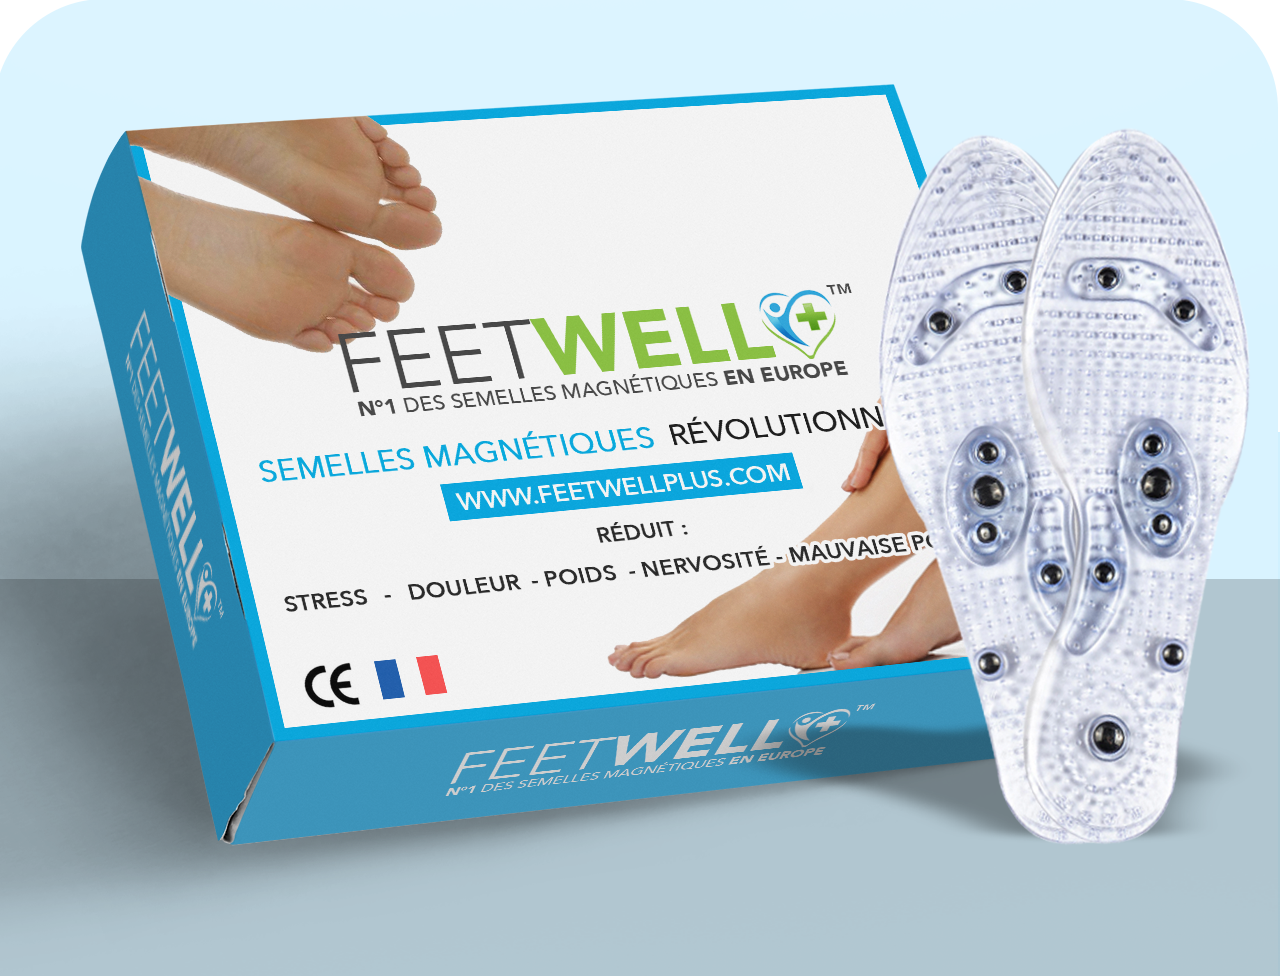 FEETWELL+™ - Semelles Magnétiques d'Acupuncture